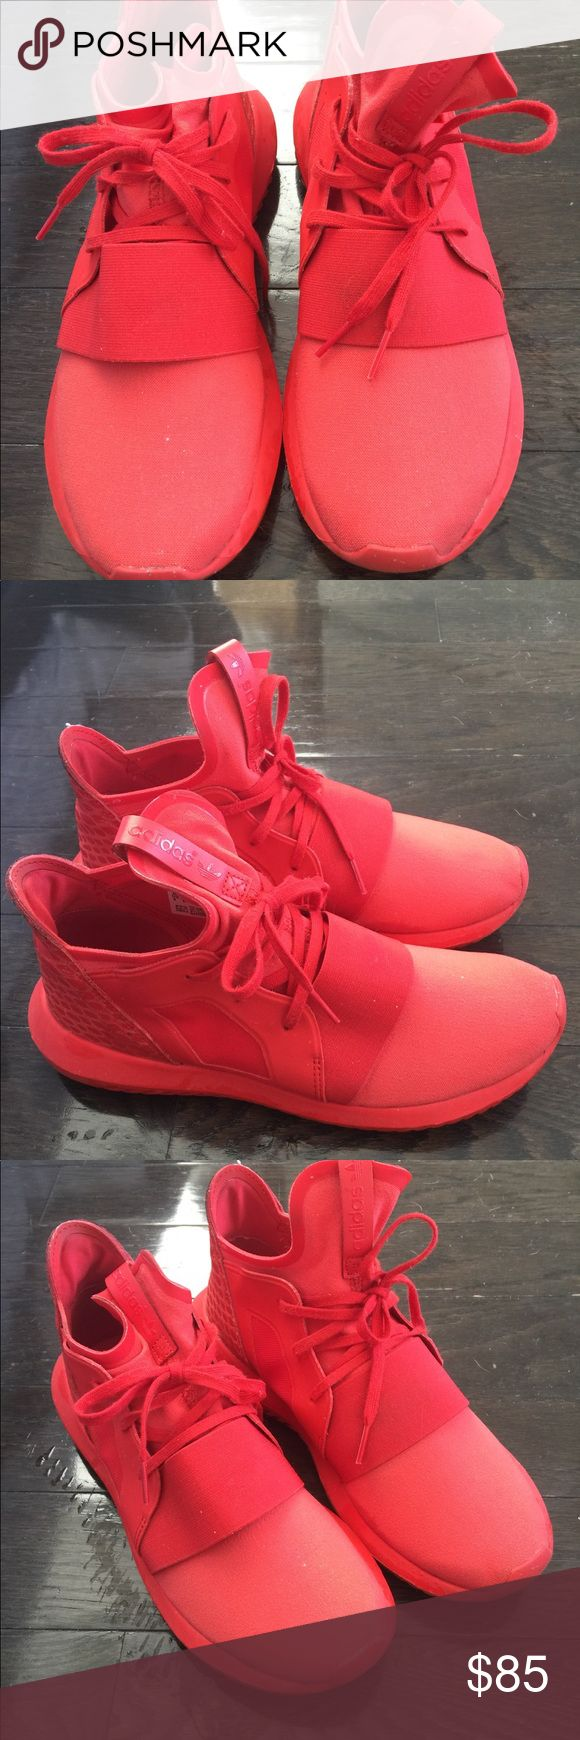 Adidas tubular defiant red sneakers All red adidas tubular defiant! Hard to find colorway.  Barely worn--only about 3 times.  Size 8 women's adidas Shoes Sneakers